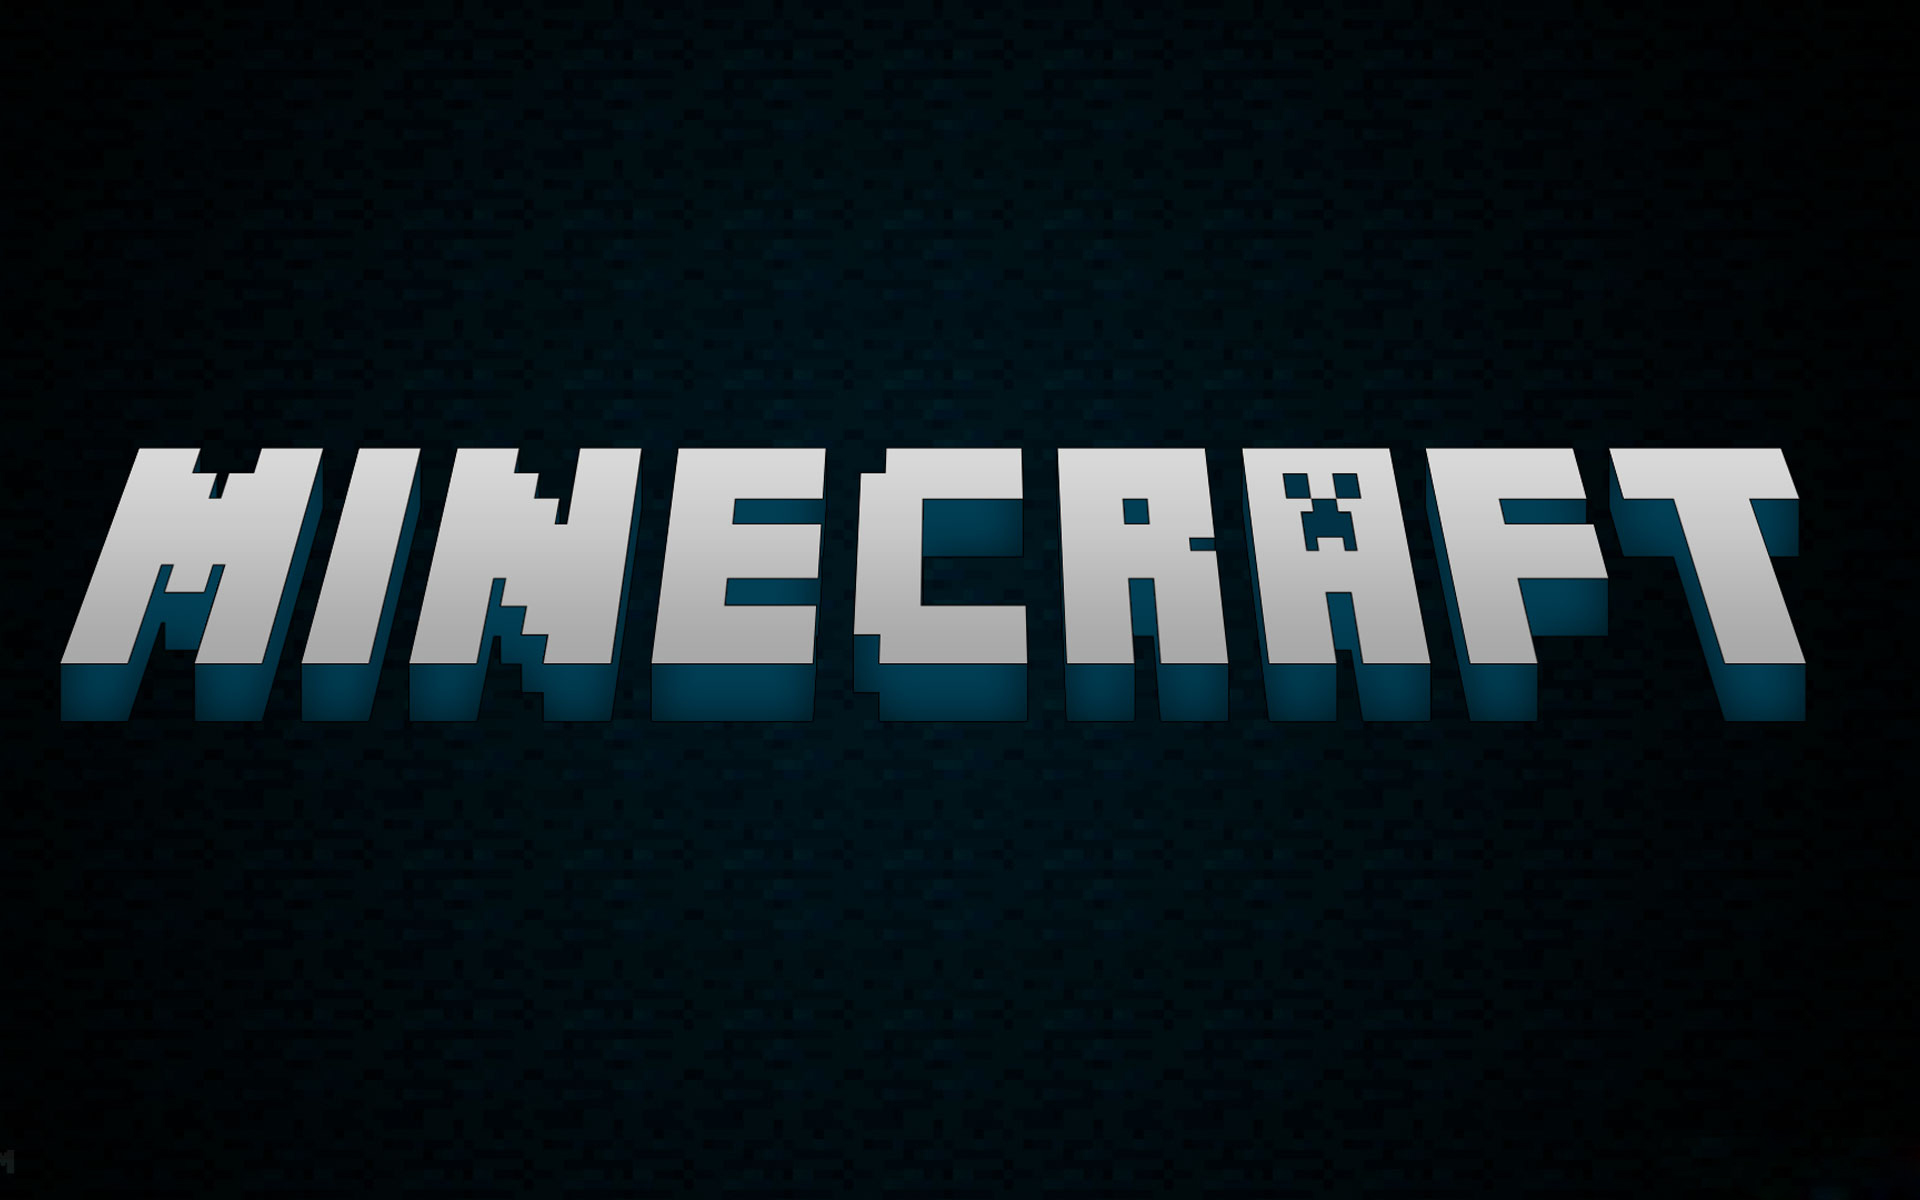 wallpaper wiki minecraft wallpaper creator download pic wpe002603